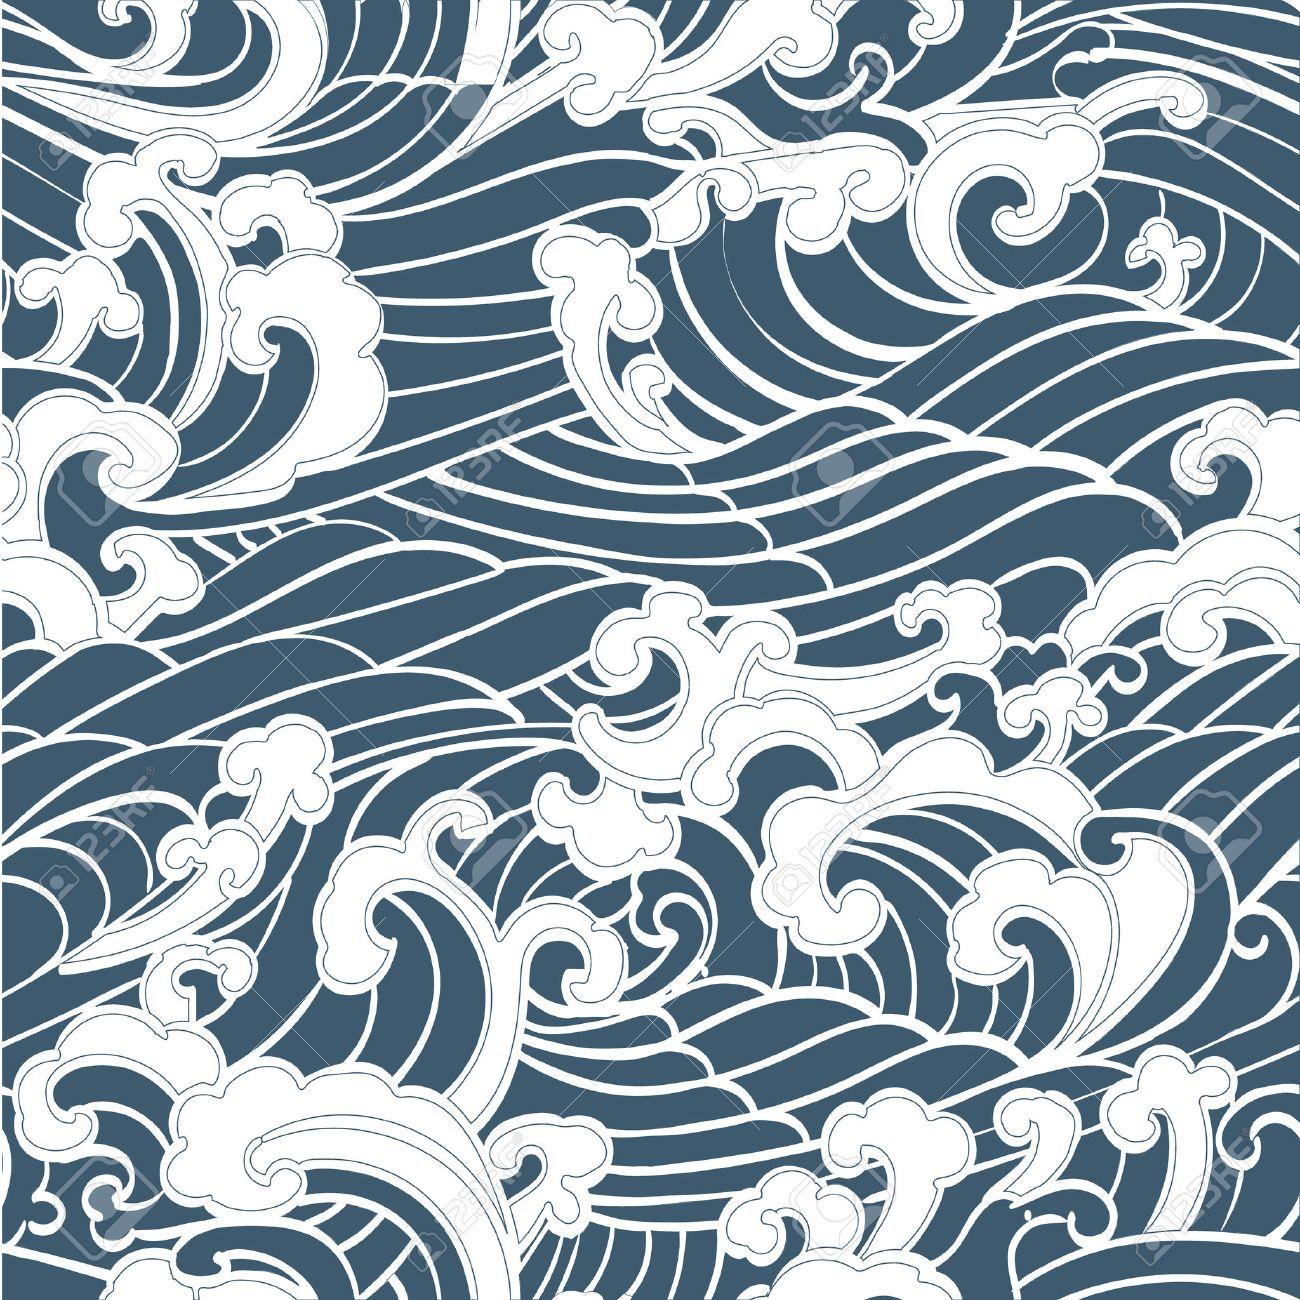 Pattern Seamless Ocean Waves hand drawn Japan style on a blue background - 54644758